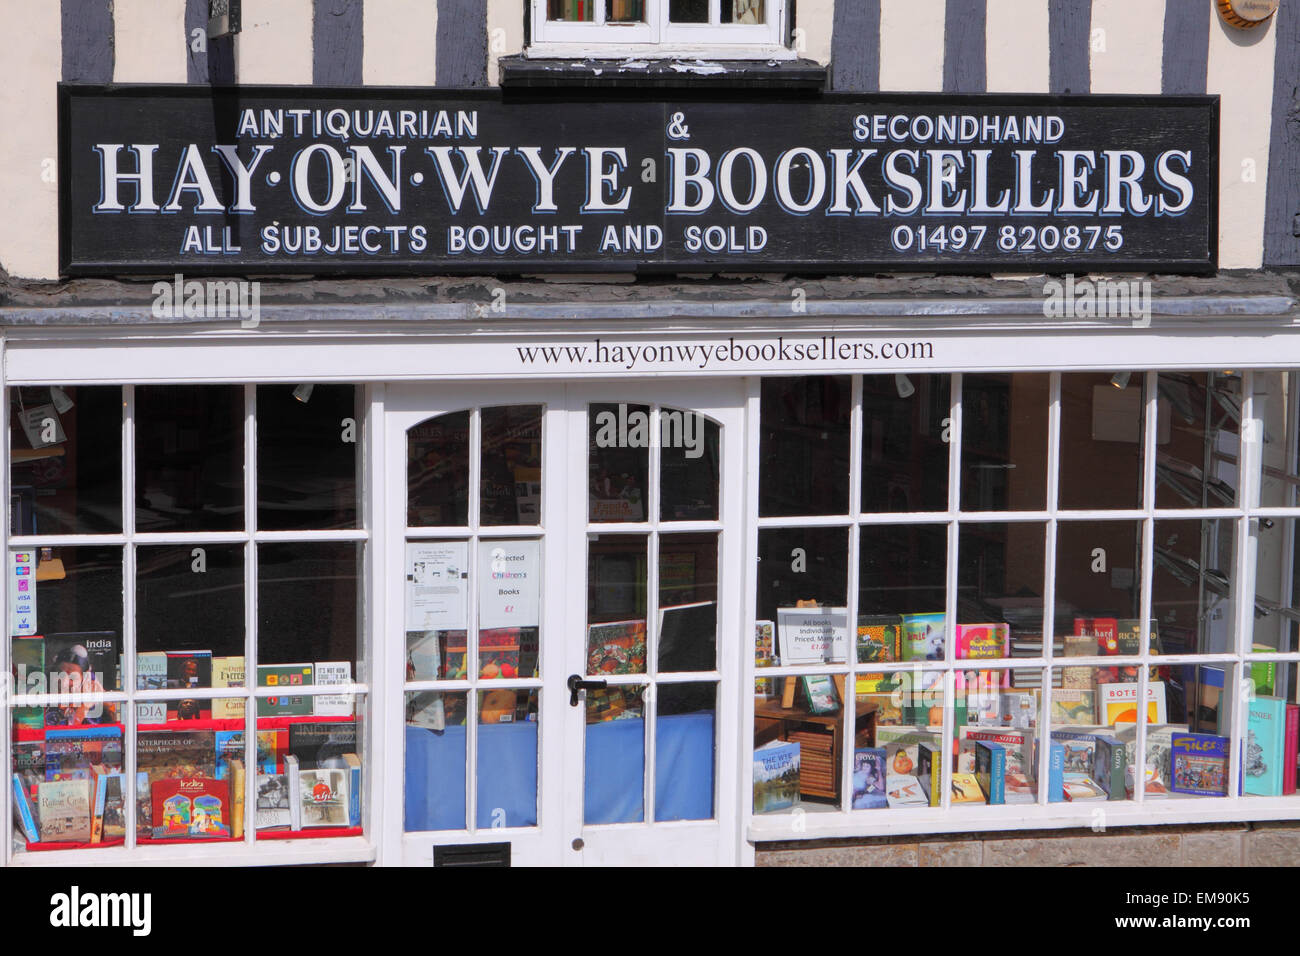 Hay on Wye 2015 Powys Wales bookshop booksellers window display selling used secondhand and antiquarian books April - Stock Image